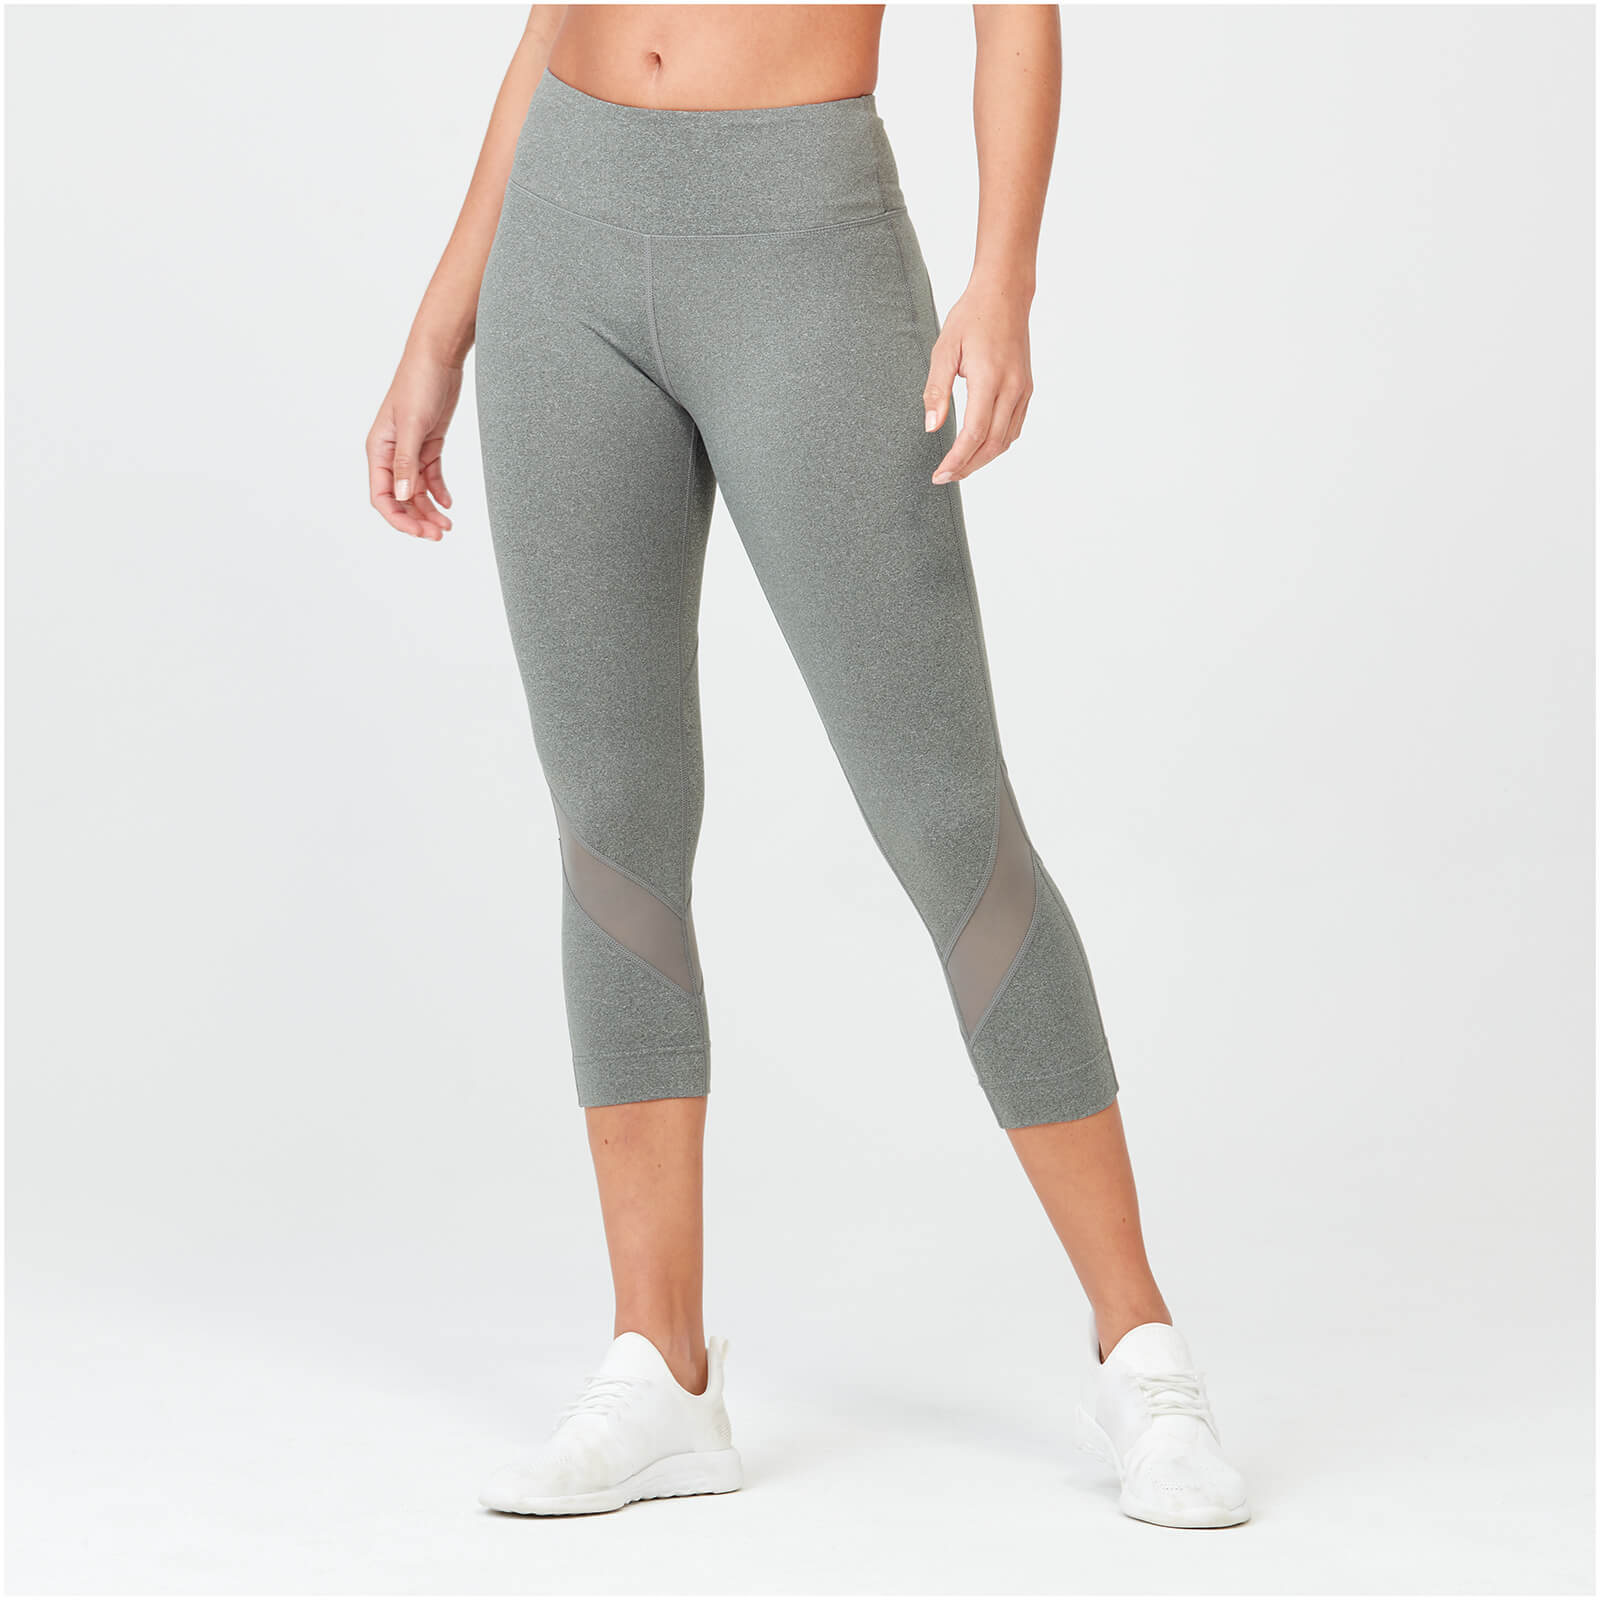 Myprotein Heartbeat Cropped Mesh Leggings - Grey - XS